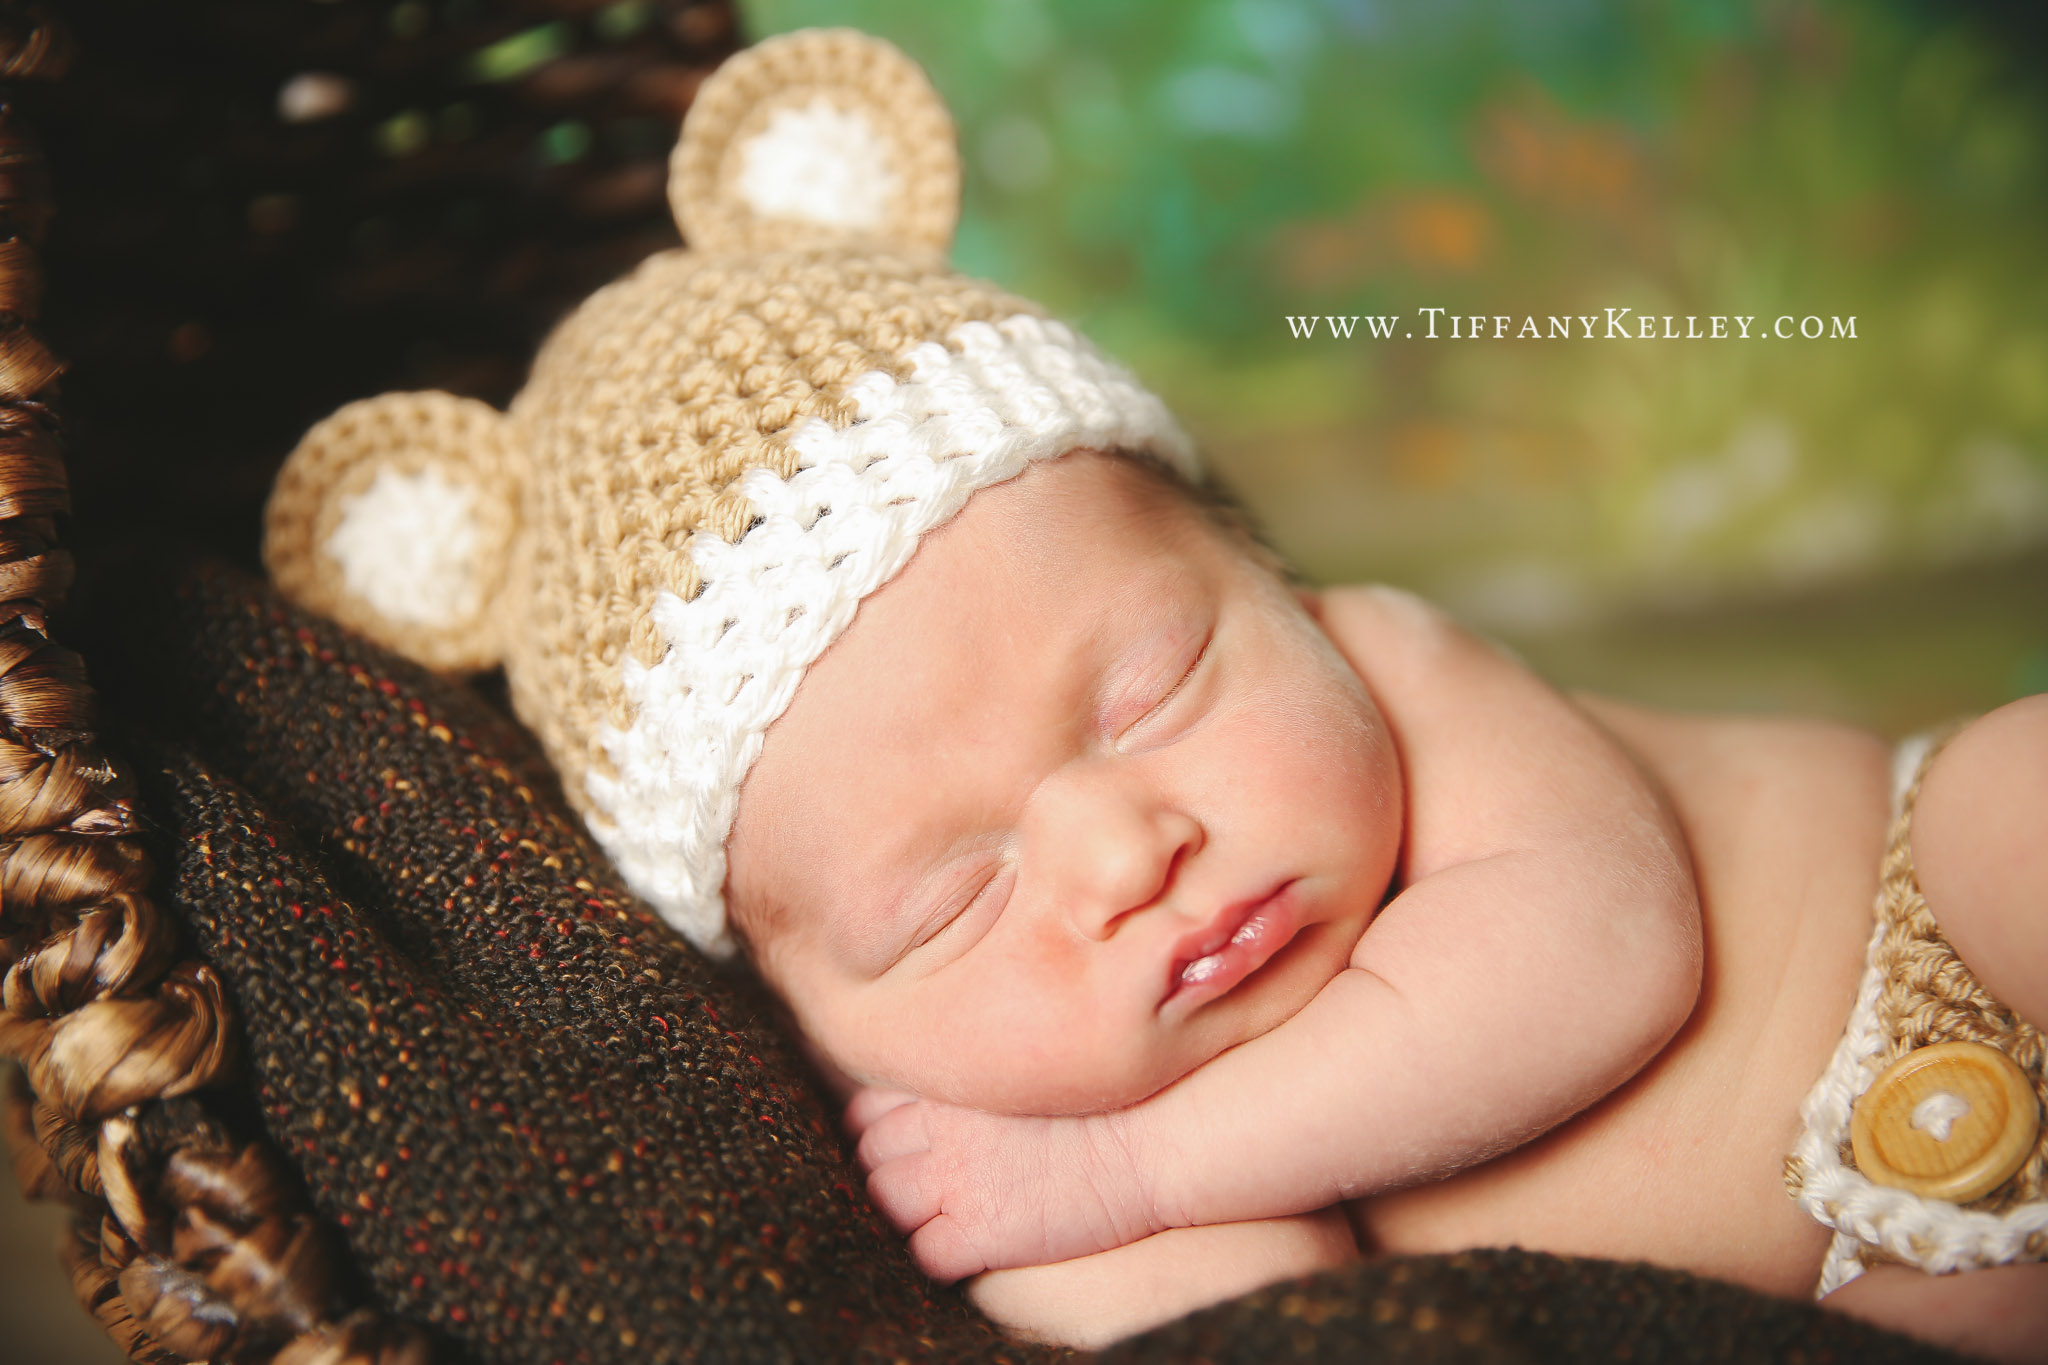 branson-springfield-missouri-newborn-photographer-tiffany-kelley-photography-05